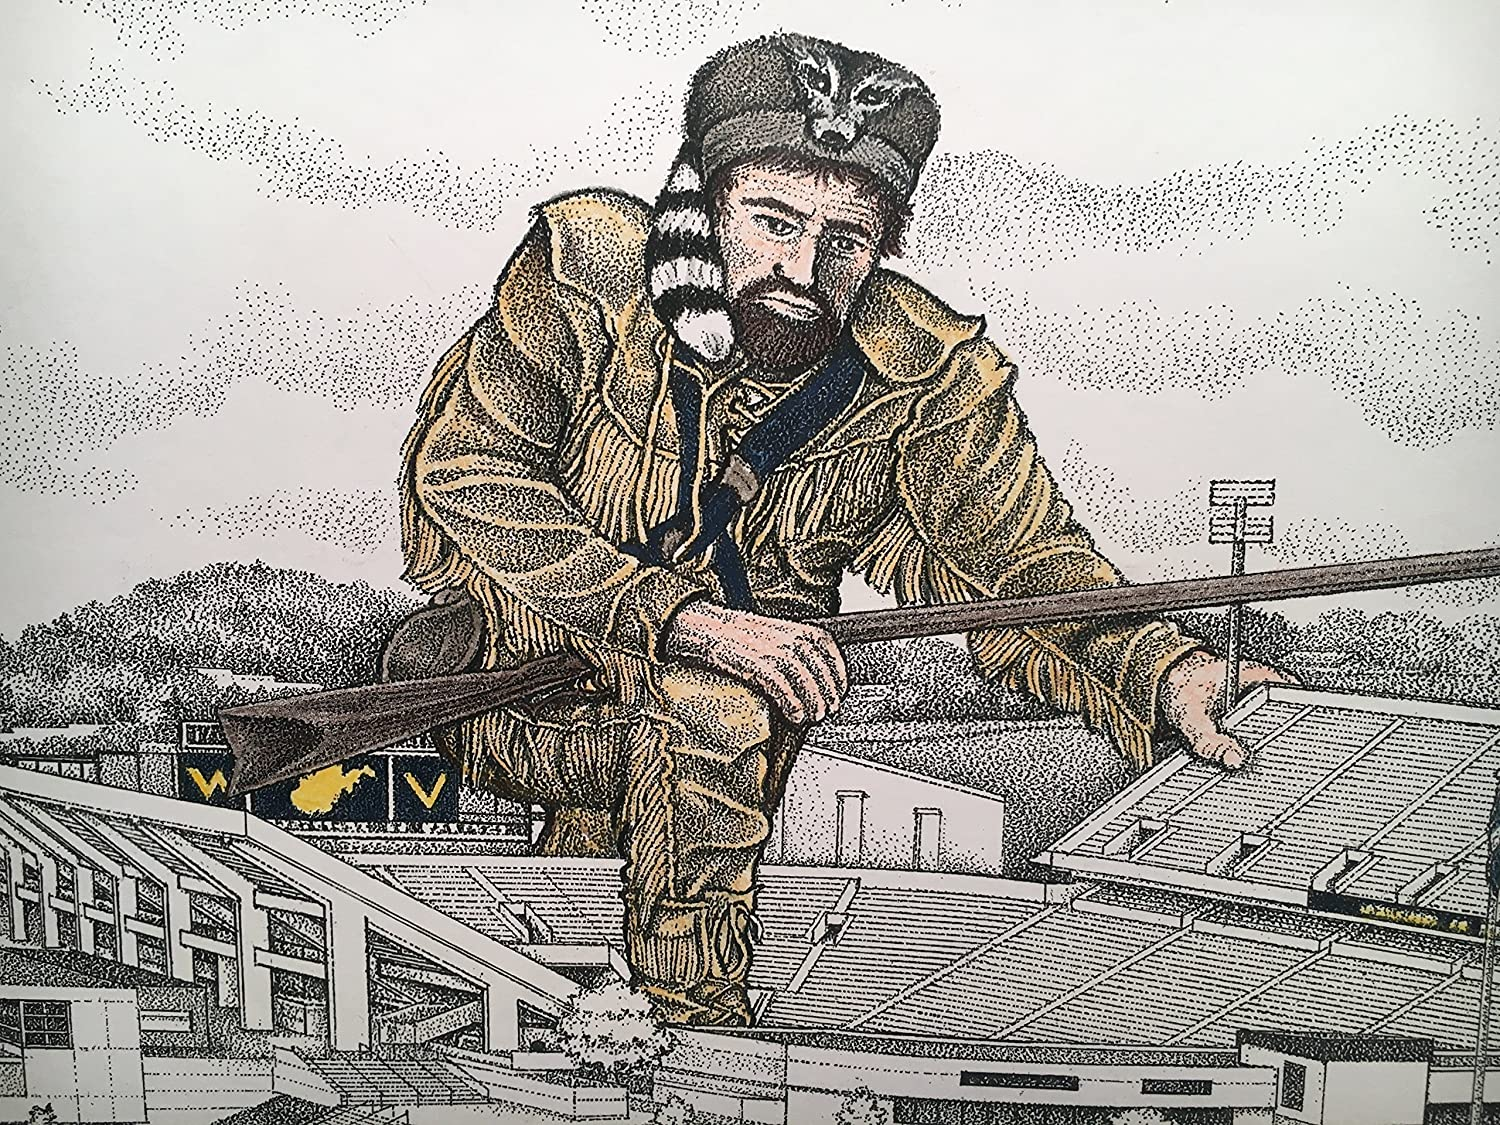 West Virginia football stadium - pen and ink drawing with mountaineer in color